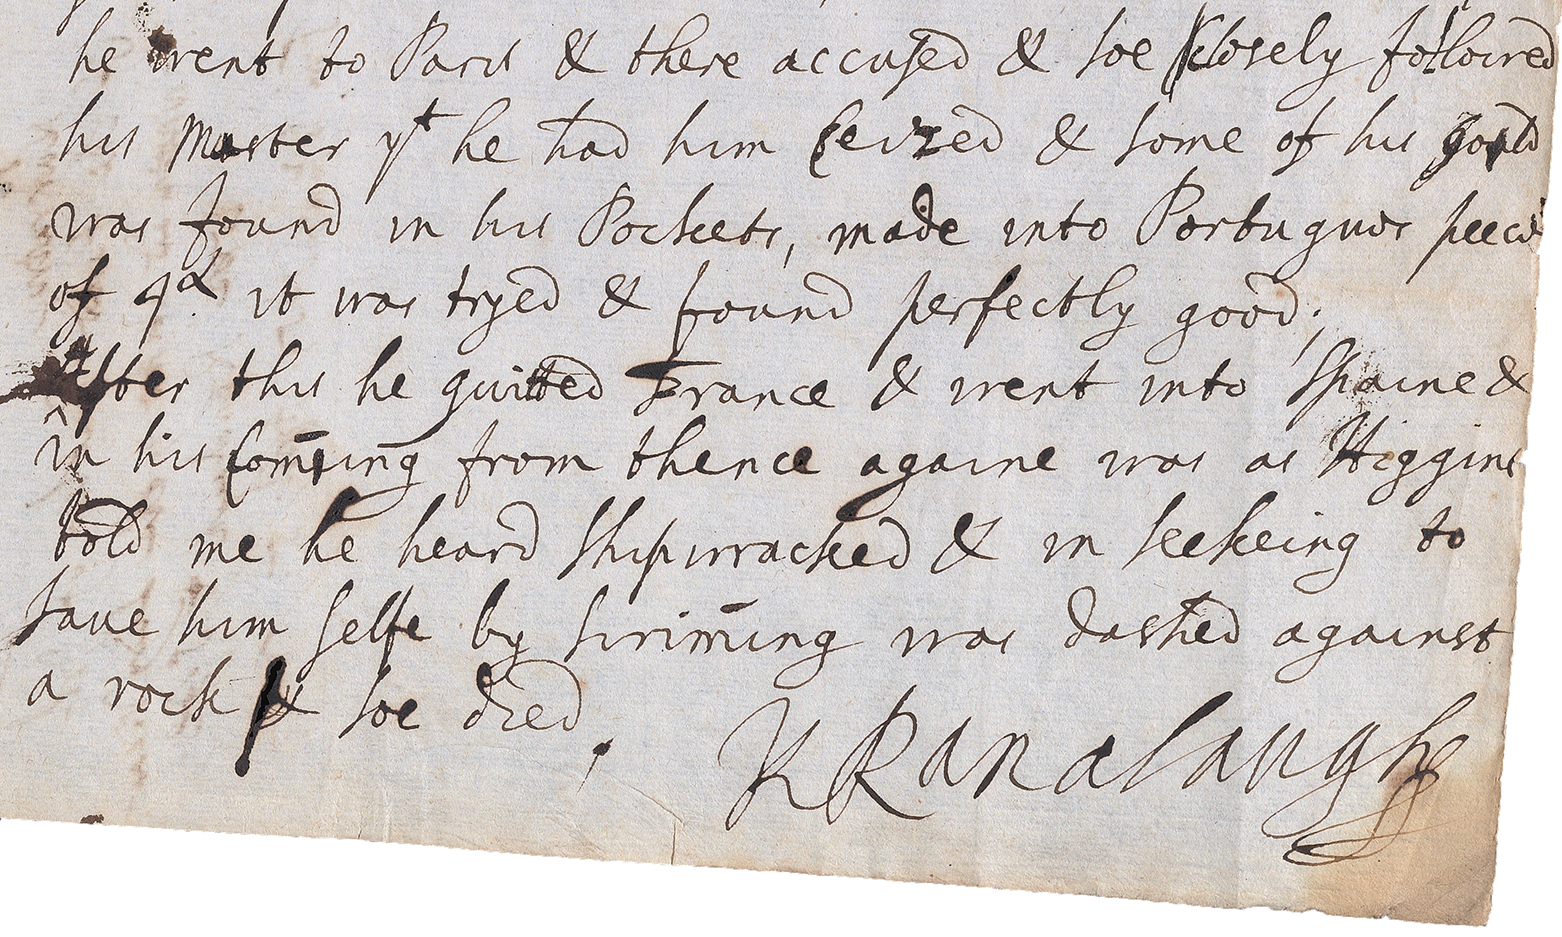 Text of old letter in cursive